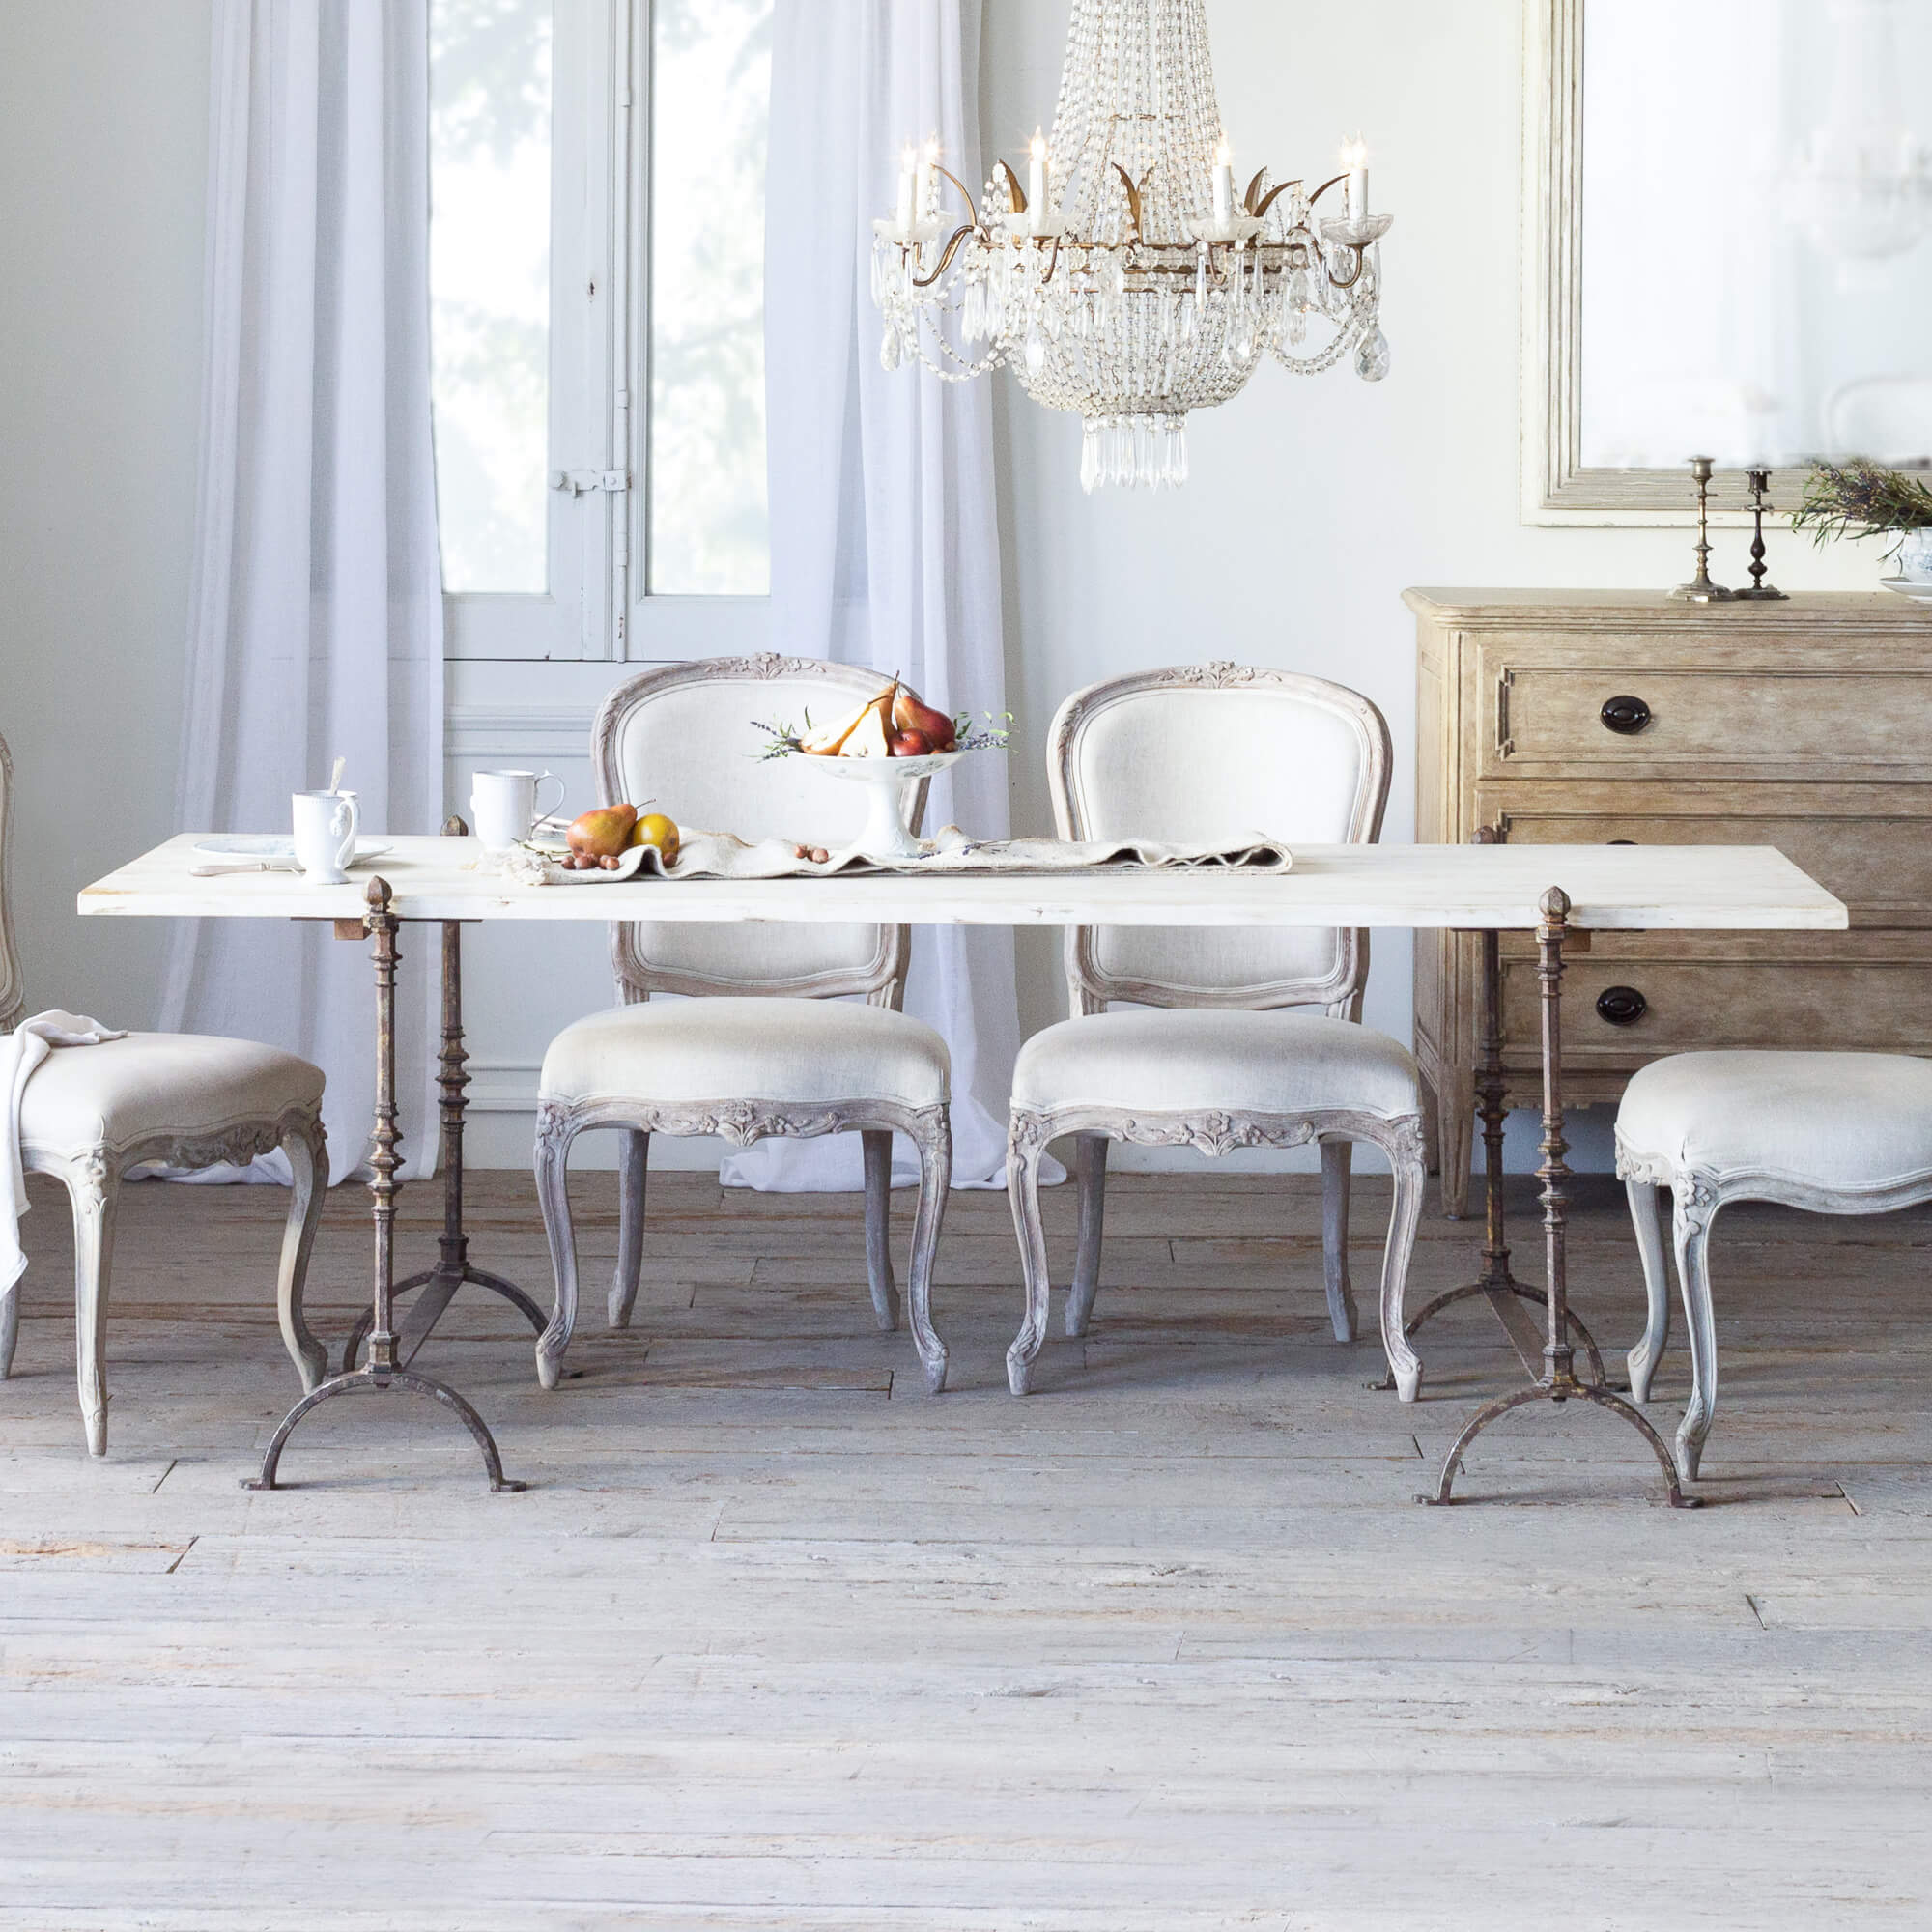 Astounding Eloquence St Remy Trestle Table In Pickled White Finish Uwap Interior Chair Design Uwaporg